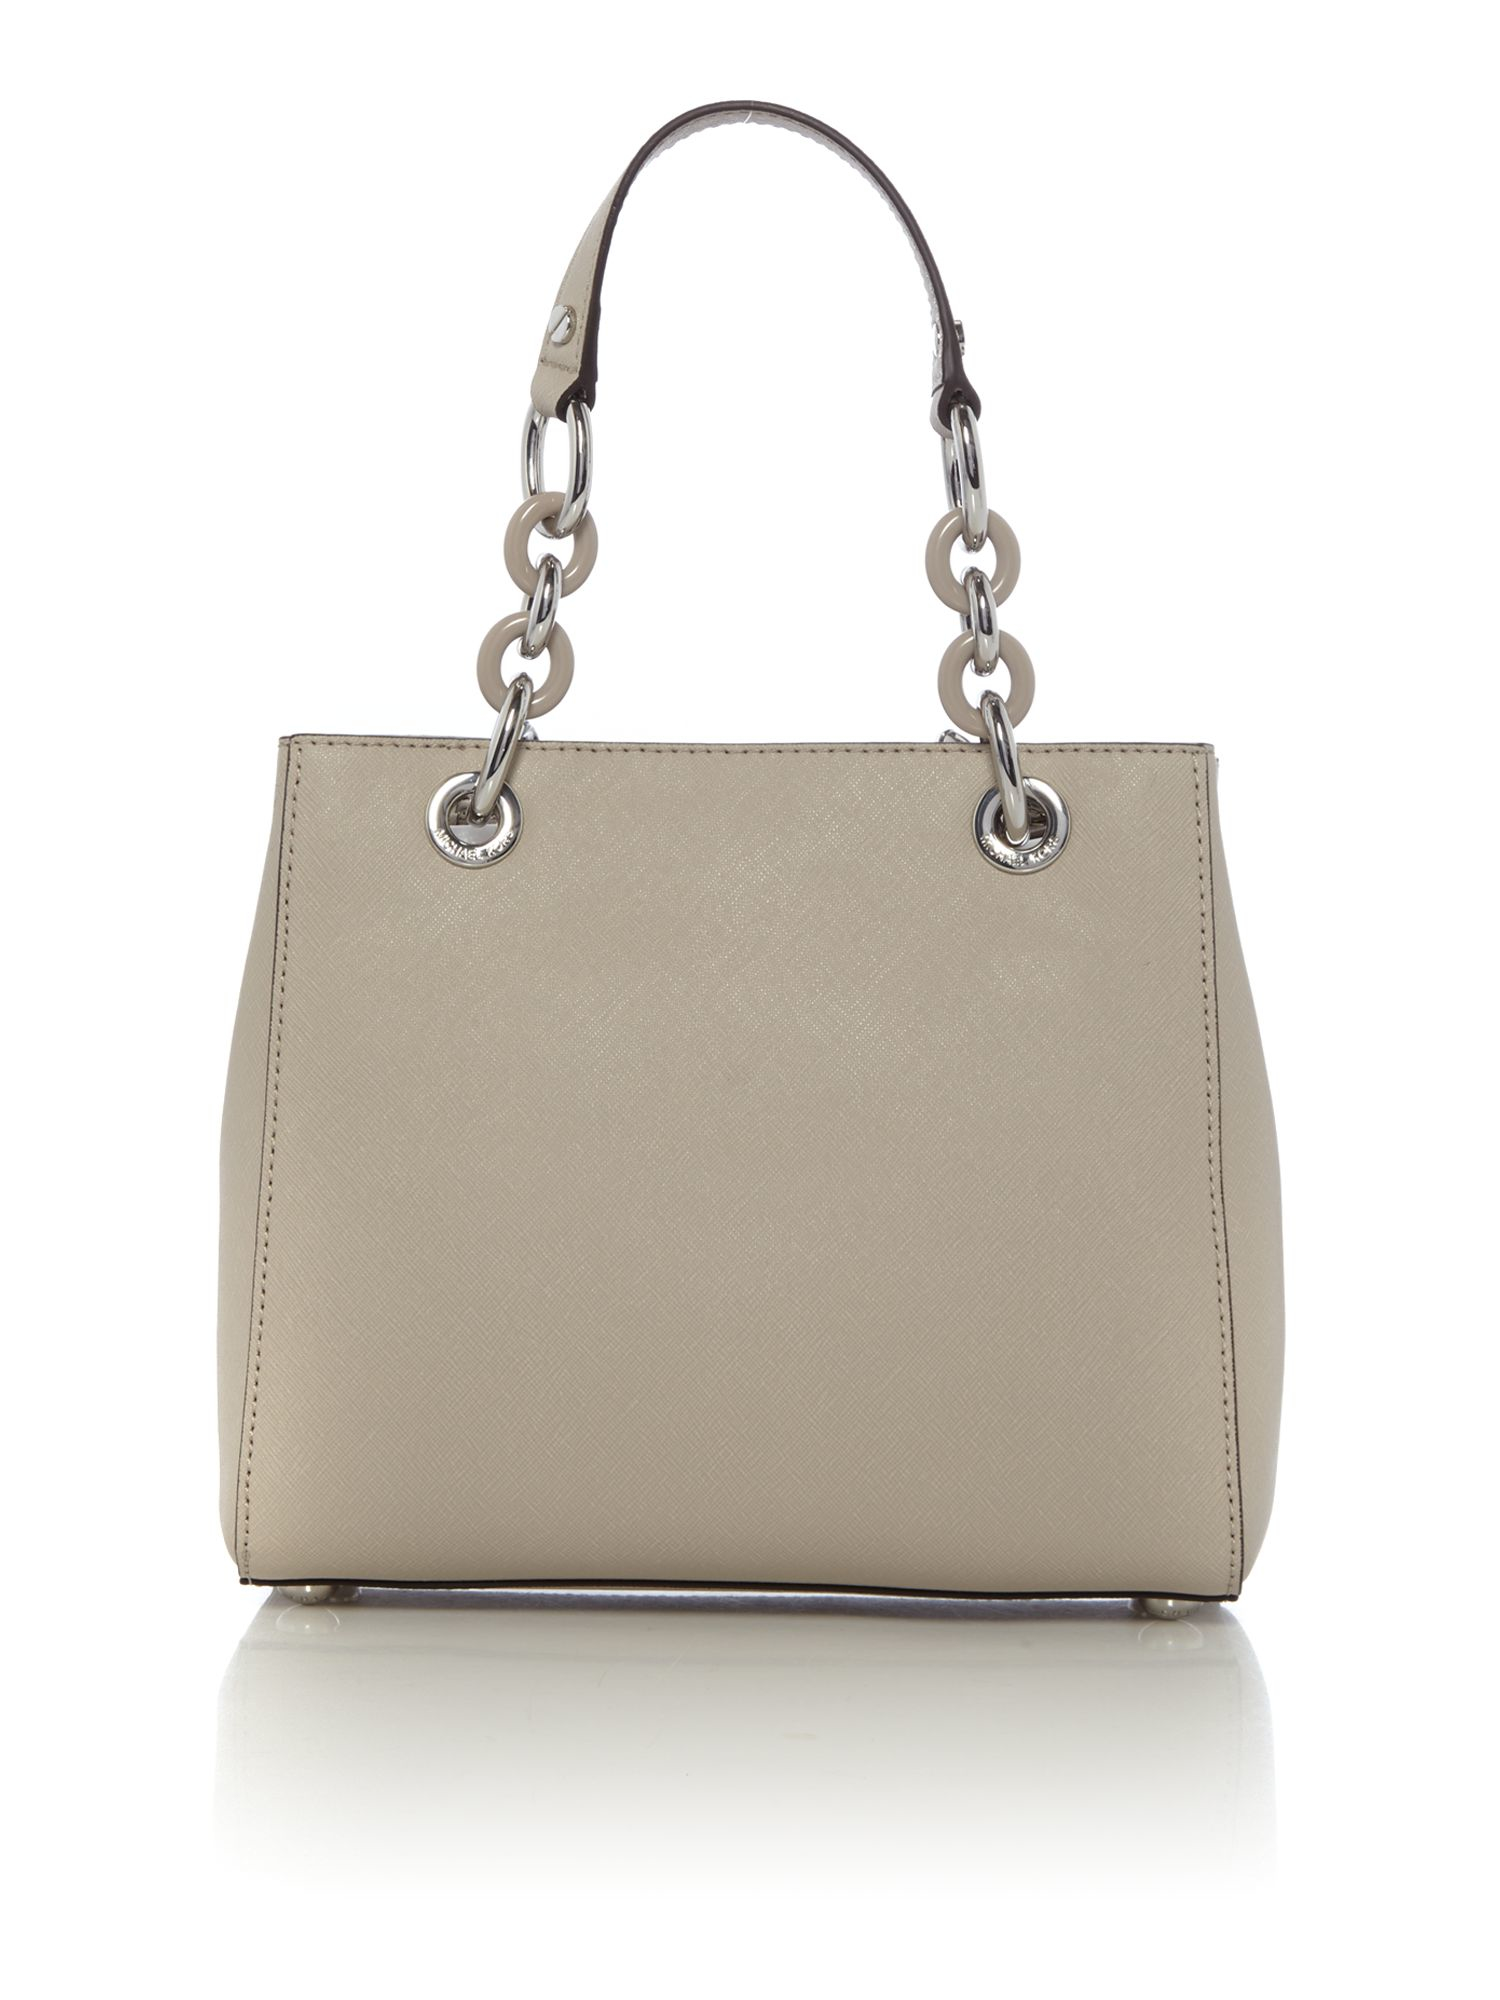 c87b176e2070 Michael Kors Small Grey Tote Bag | Stanford Center for Opportunity ...